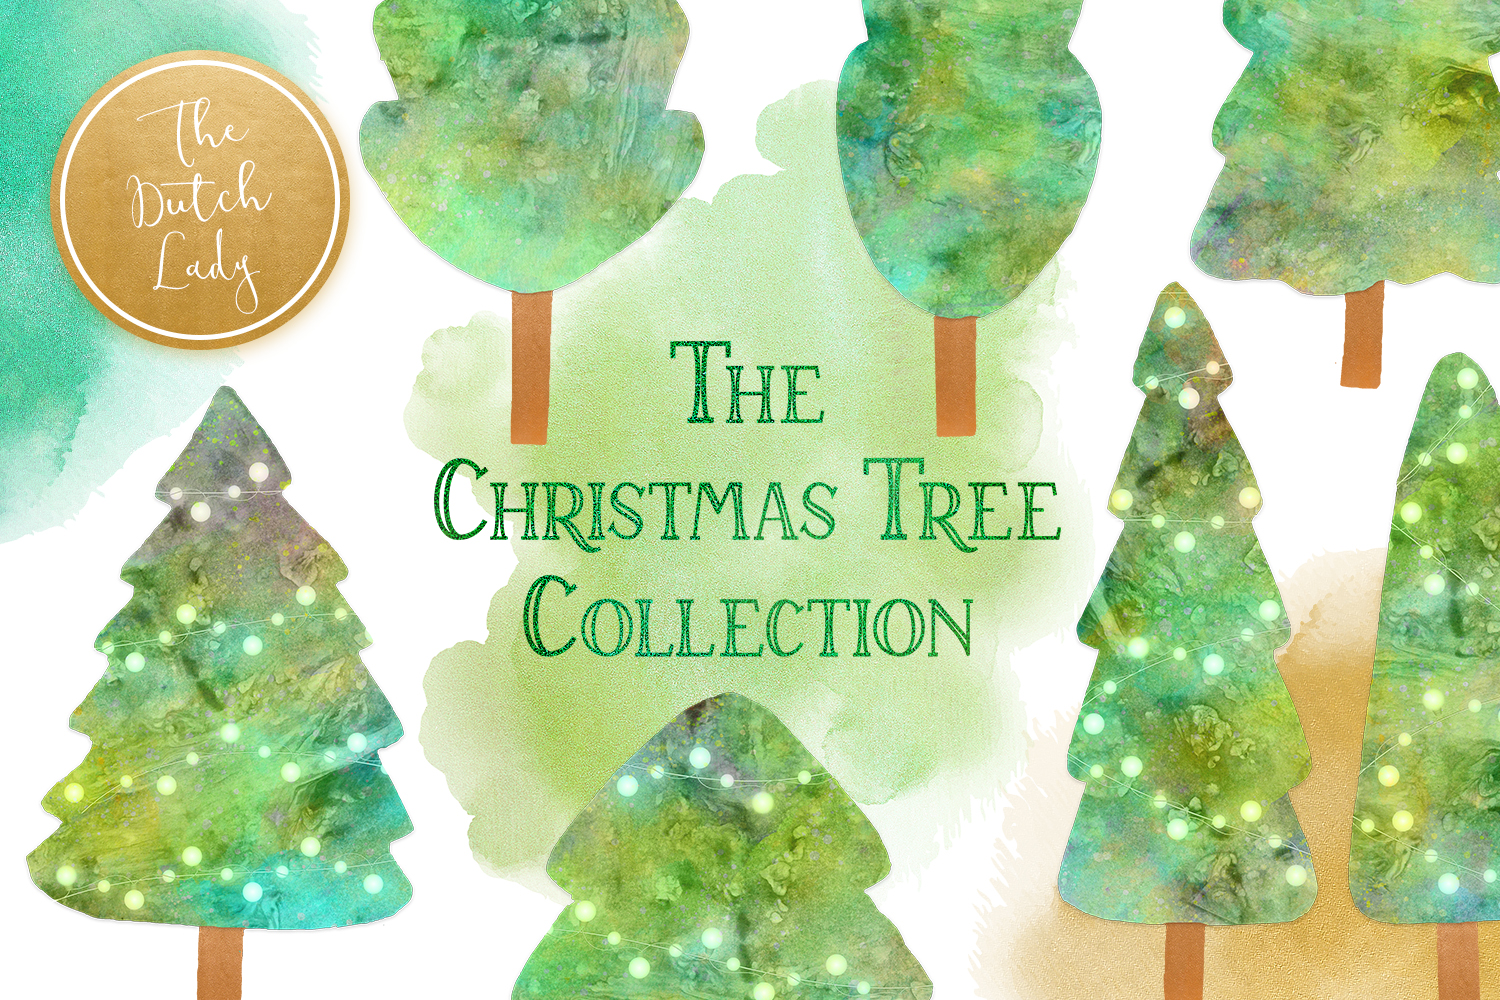 Download Free Christmas Tree Collection Clipart Set Graphic By Daphnepopuliers for Cricut Explore, Silhouette and other cutting machines.